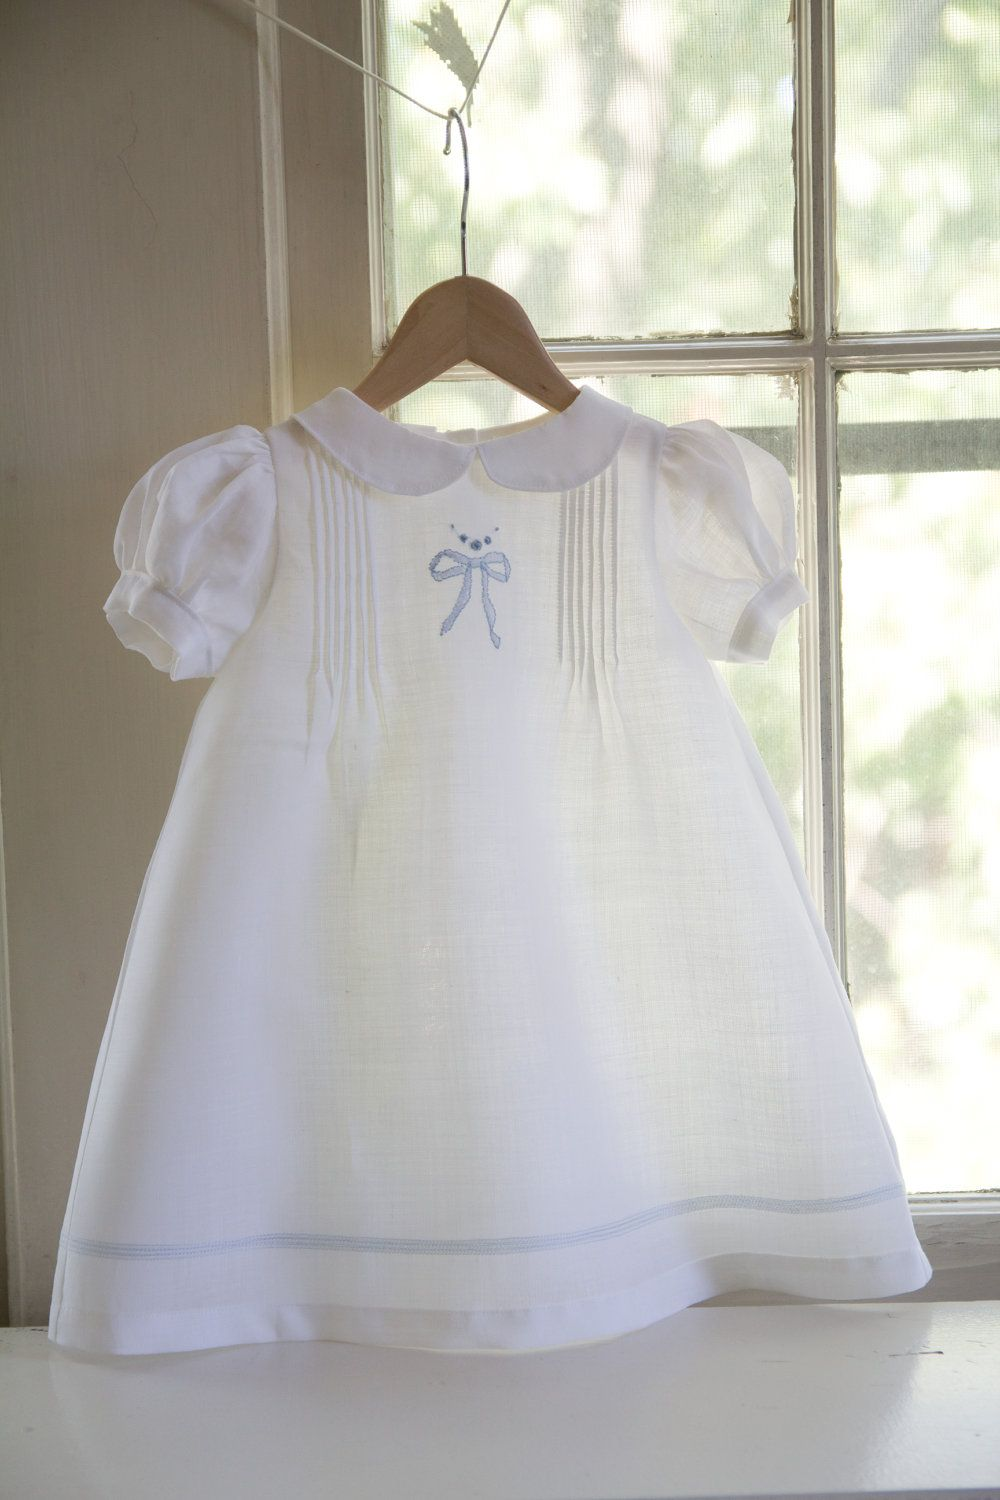 Baby Dress Slip in Pure White Cotton with Embroidery Vintage Heirloom Quality